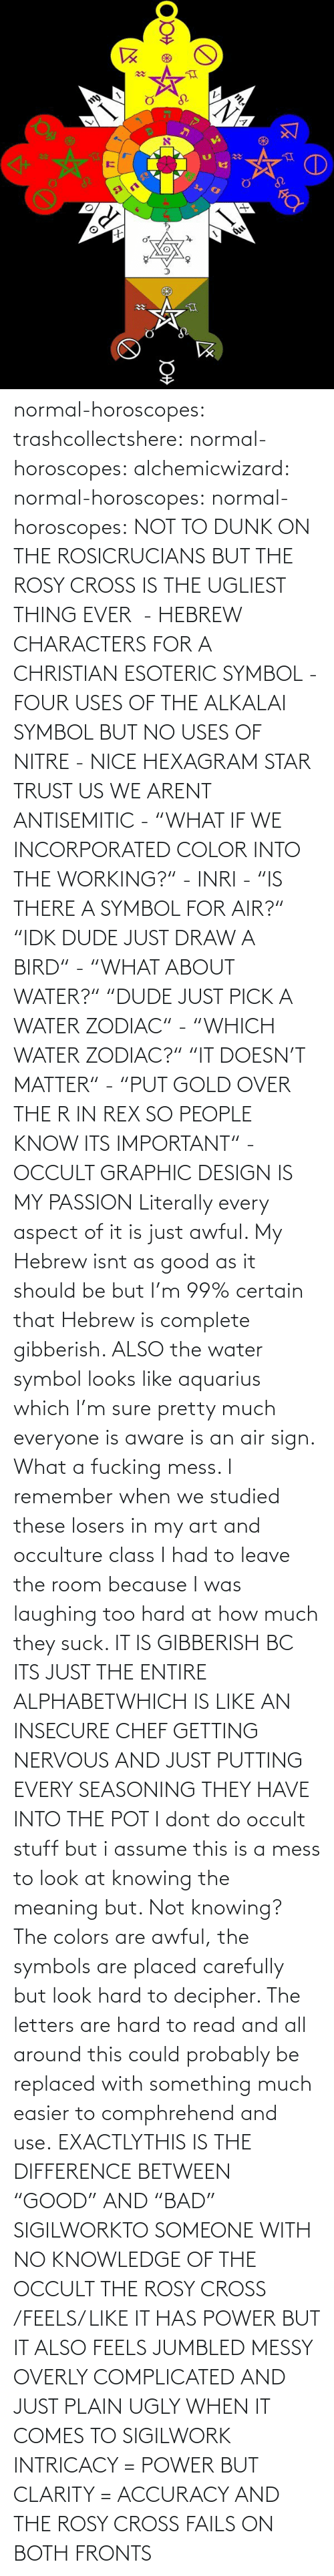 "A Fucking: normal-horoscopes:  trashcollectshere: normal-horoscopes:   alchemicwizard:  normal-horoscopes:  normal-horoscopes: NOT TO DUNK ON THE ROSICRUCIANS BUT THE ROSY CROSS IS THE UGLIEST THING EVER  - HEBREW CHARACTERS FOR A CHRISTIAN ESOTERIC SYMBOL - FOUR USES OF THE ALKALAI SYMBOL BUT NO USES OF NITRE - NICE HEXAGRAM STAR TRUST US WE ARENT ANTISEMITIC - ""WHAT IF WE INCORPORATED COLOR INTO THE WORKING?"" - INRI - ""IS THERE A SYMBOL FOR AIR?"" ""IDK DUDE JUST DRAW A BIRD"" - ""WHAT ABOUT WATER?"" ""DUDE JUST PICK A WATER ZODIAC"" - ""WHICH WATER ZODIAC?"" ""IT DOESN'T MATTER"" - ""PUT GOLD OVER THE R IN REX SO PEOPLE KNOW ITS IMPORTANT"" - OCCULT GRAPHIC DESIGN IS MY PASSION  Literally every aspect of it is just awful. My Hebrew isnt as good as it should be but I'm 99% certain that Hebrew is complete gibberish.  ALSO the water symbol looks like aquarius which I'm sure pretty much everyone is aware is an air sign. What a fucking mess.  I remember when we studied these losers in my art and occulture class I had to leave the room because I was laughing too hard at how much they suck.   IT IS GIBBERISH BC ITS JUST THE ENTIRE ALPHABETWHICH IS LIKE AN INSECURE CHEF GETTING NERVOUS AND JUST PUTTING EVERY SEASONING THEY HAVE INTO THE POT     I dont do occult stuff but i assume this is a mess to look at knowing the meaning but. Not knowing? The colors are awful, the symbols are placed carefully but look hard to decipher. The letters are hard to read and all around this could probably be replaced with something much easier to comphrehend and use.  EXACTLYTHIS IS THE DIFFERENCE BETWEEN ""GOOD"" AND ""BAD"" SIGILWORKTO SOMEONE WITH NO KNOWLEDGE OF THE OCCULT THE ROSY CROSS /FEELS/ LIKE IT HAS POWER BUT IT ALSO FEELS JUMBLED MESSY OVERLY COMPLICATED AND JUST PLAIN UGLY WHEN IT COMES TO SIGILWORK INTRICACY = POWER BUT CLARITY = ACCURACY AND THE ROSY CROSS FAILS ON BOTH FRONTS"